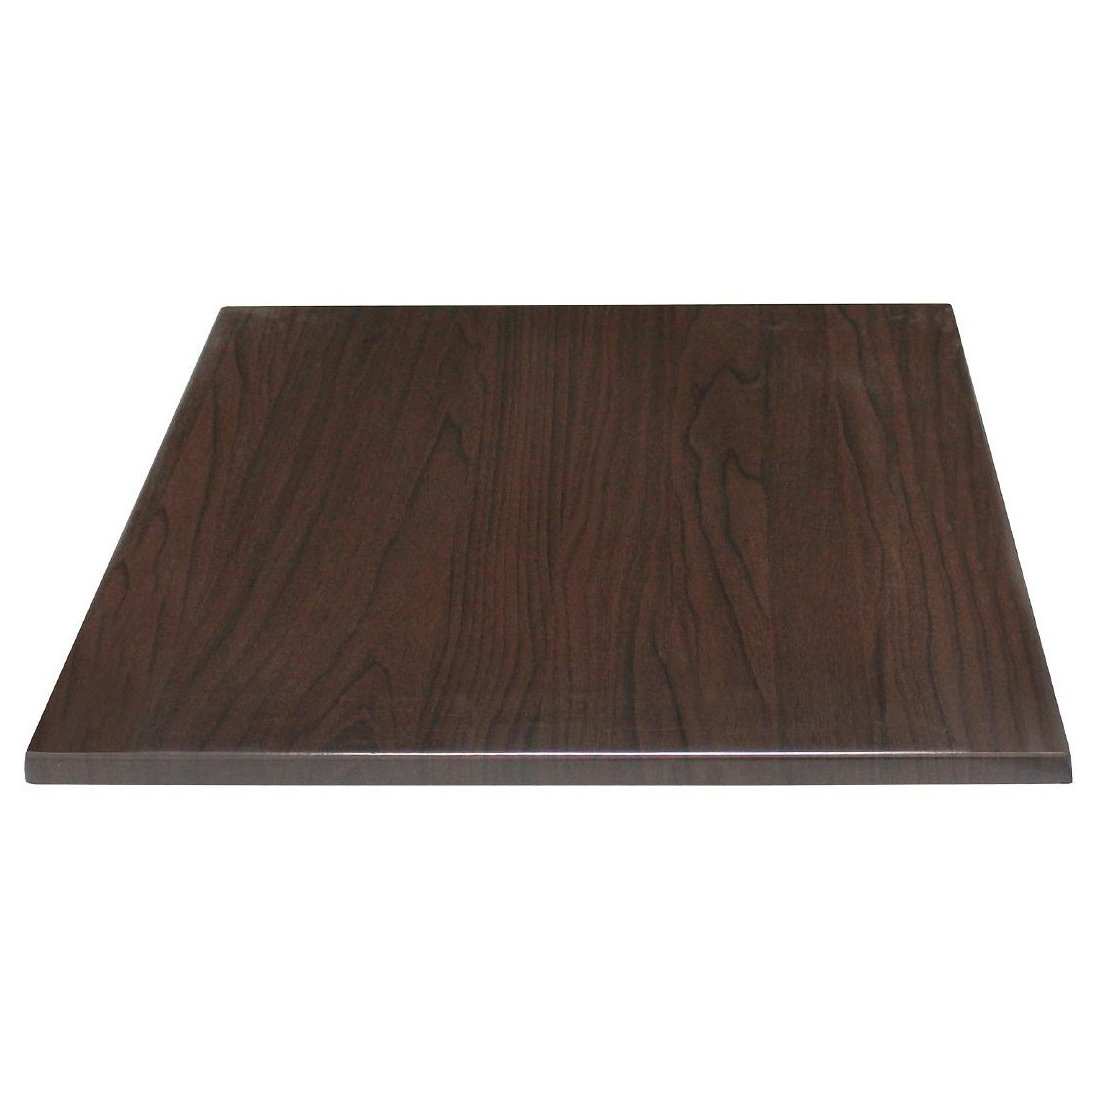 Table top Tqd3 Bolero Pre Drilled Square Table tops Dark Brown P Gg635